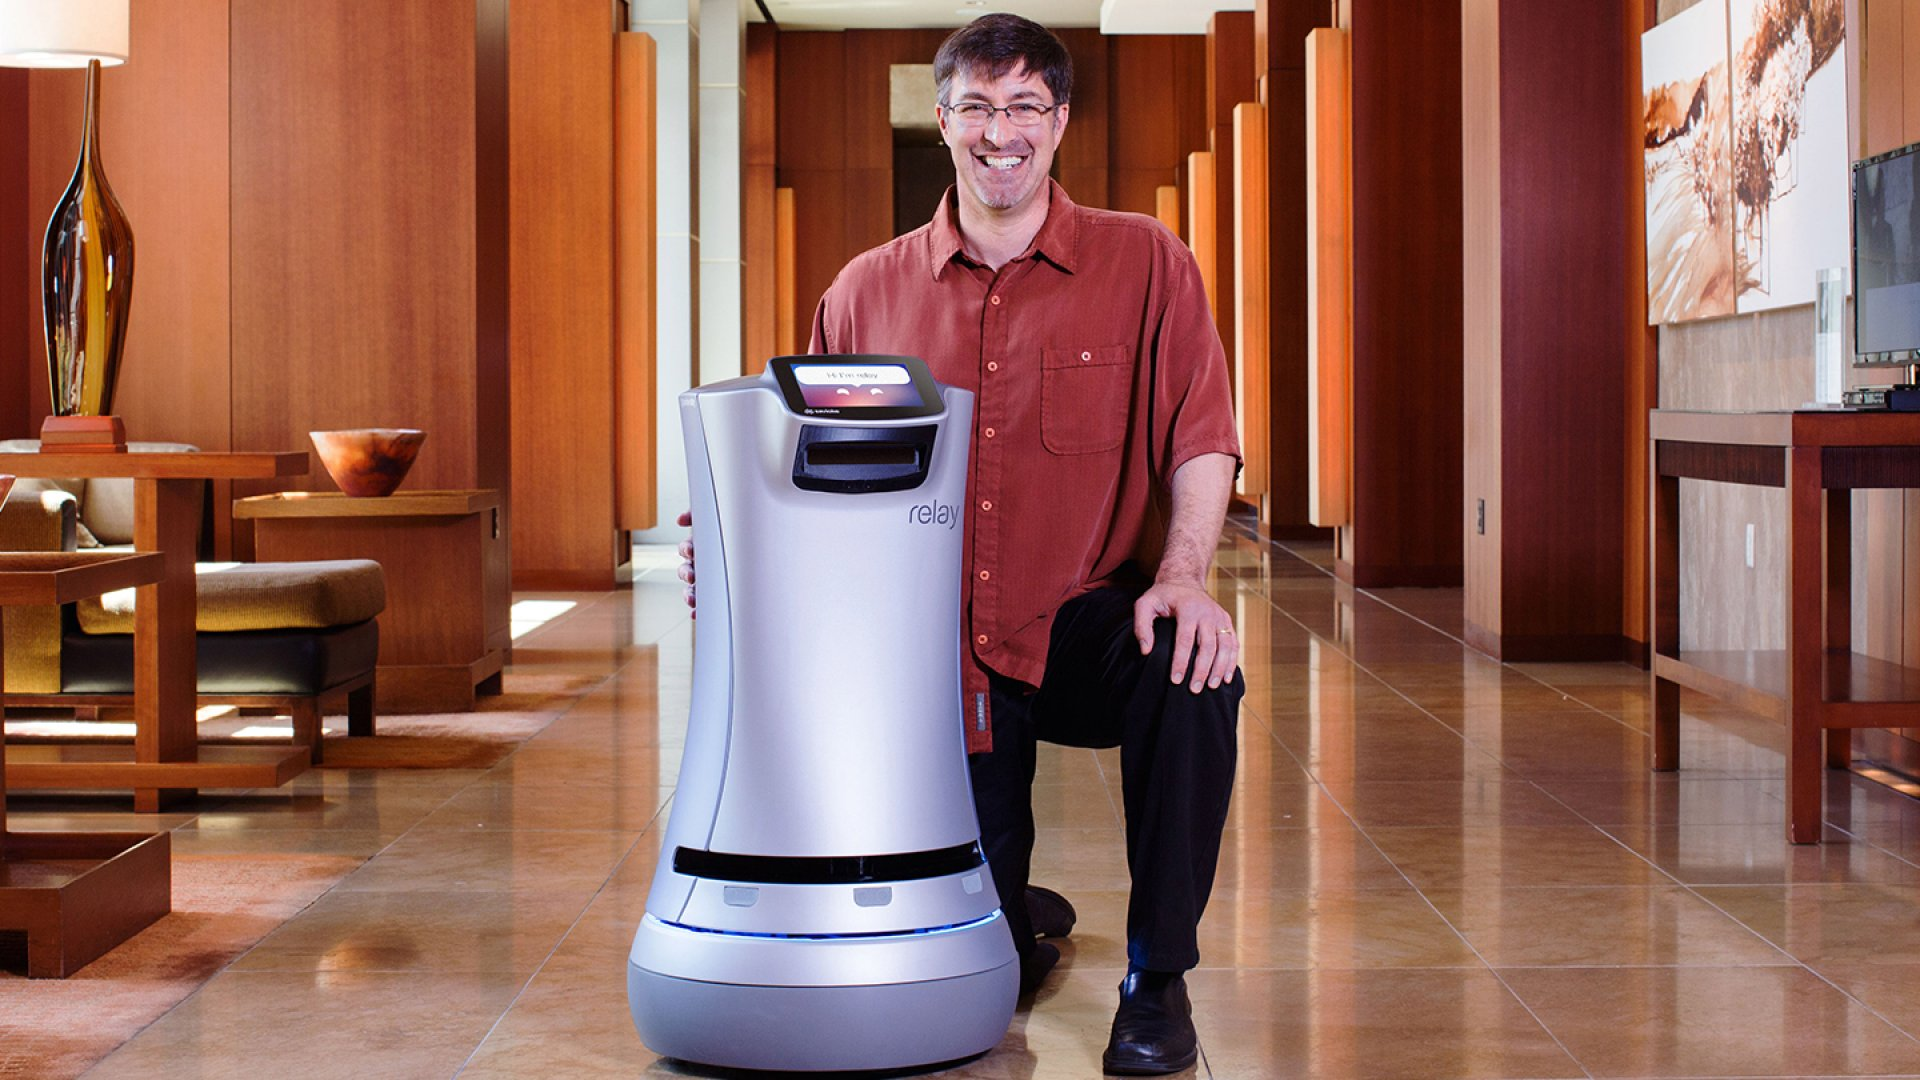 Relay, Savioke's delivery robot, has been adopted by hotels in California.